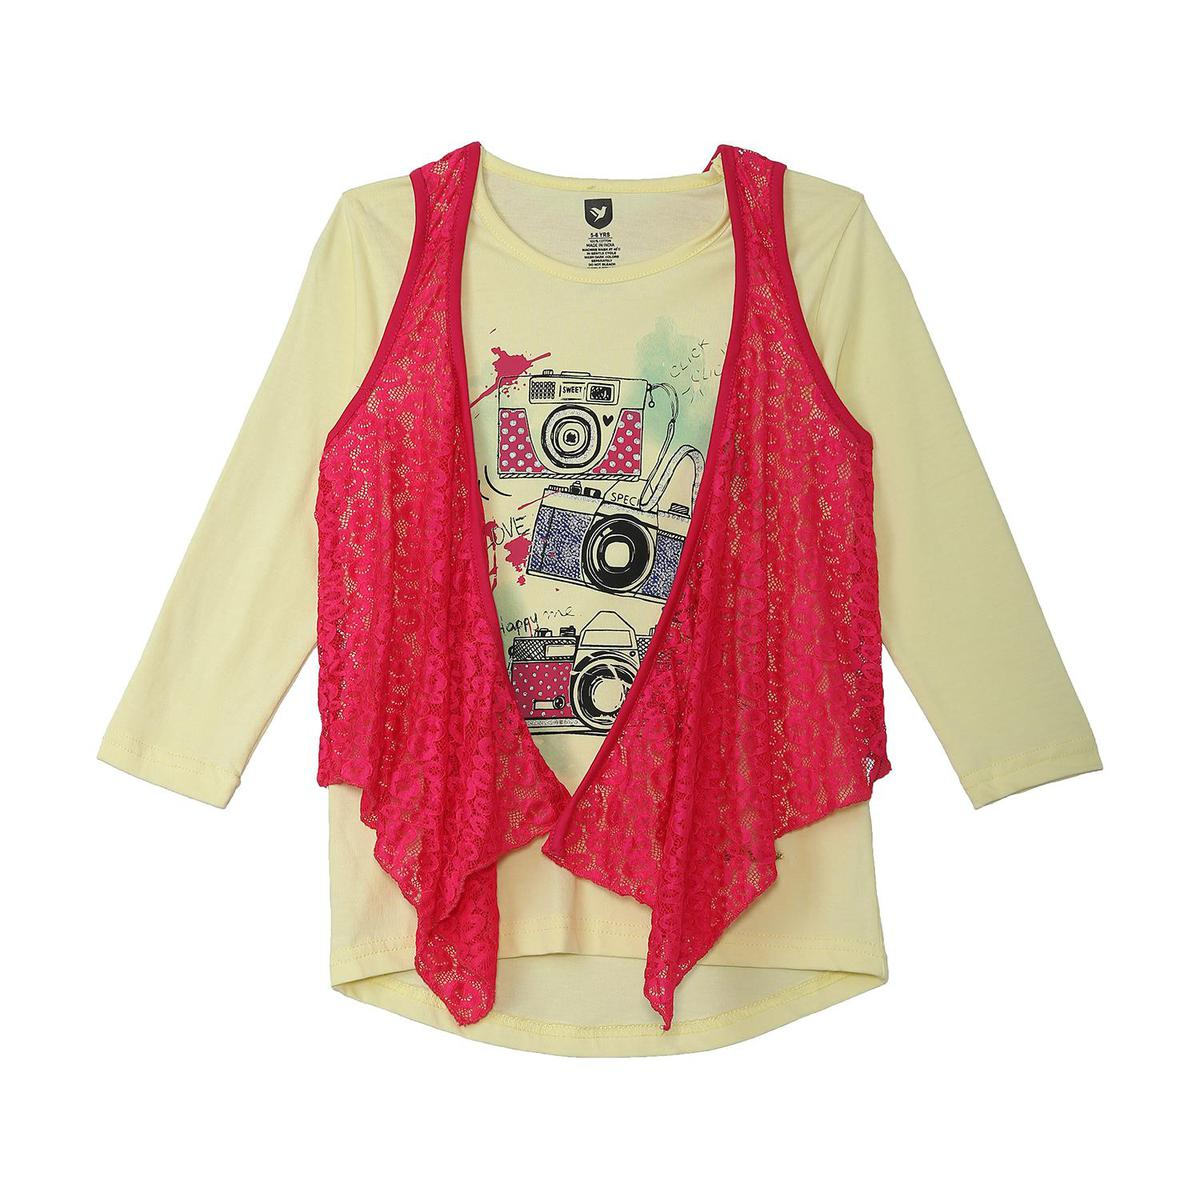 612 League - Girl's Light Yellow Colored Knits  Graphic Top